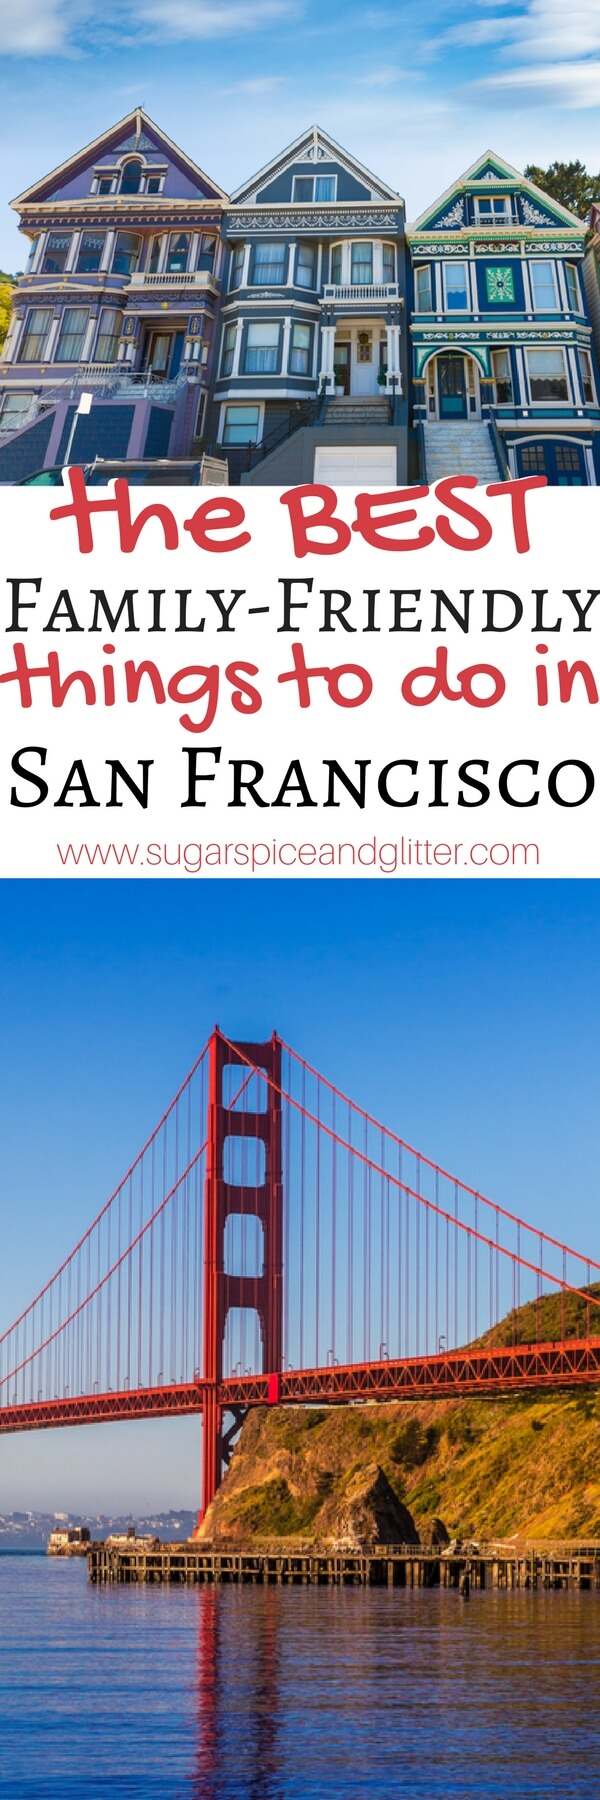 The BEST Family-friendly things to do in San Francisco on a budget. This list is awesome if you're travelling to San Fran or even if you're local